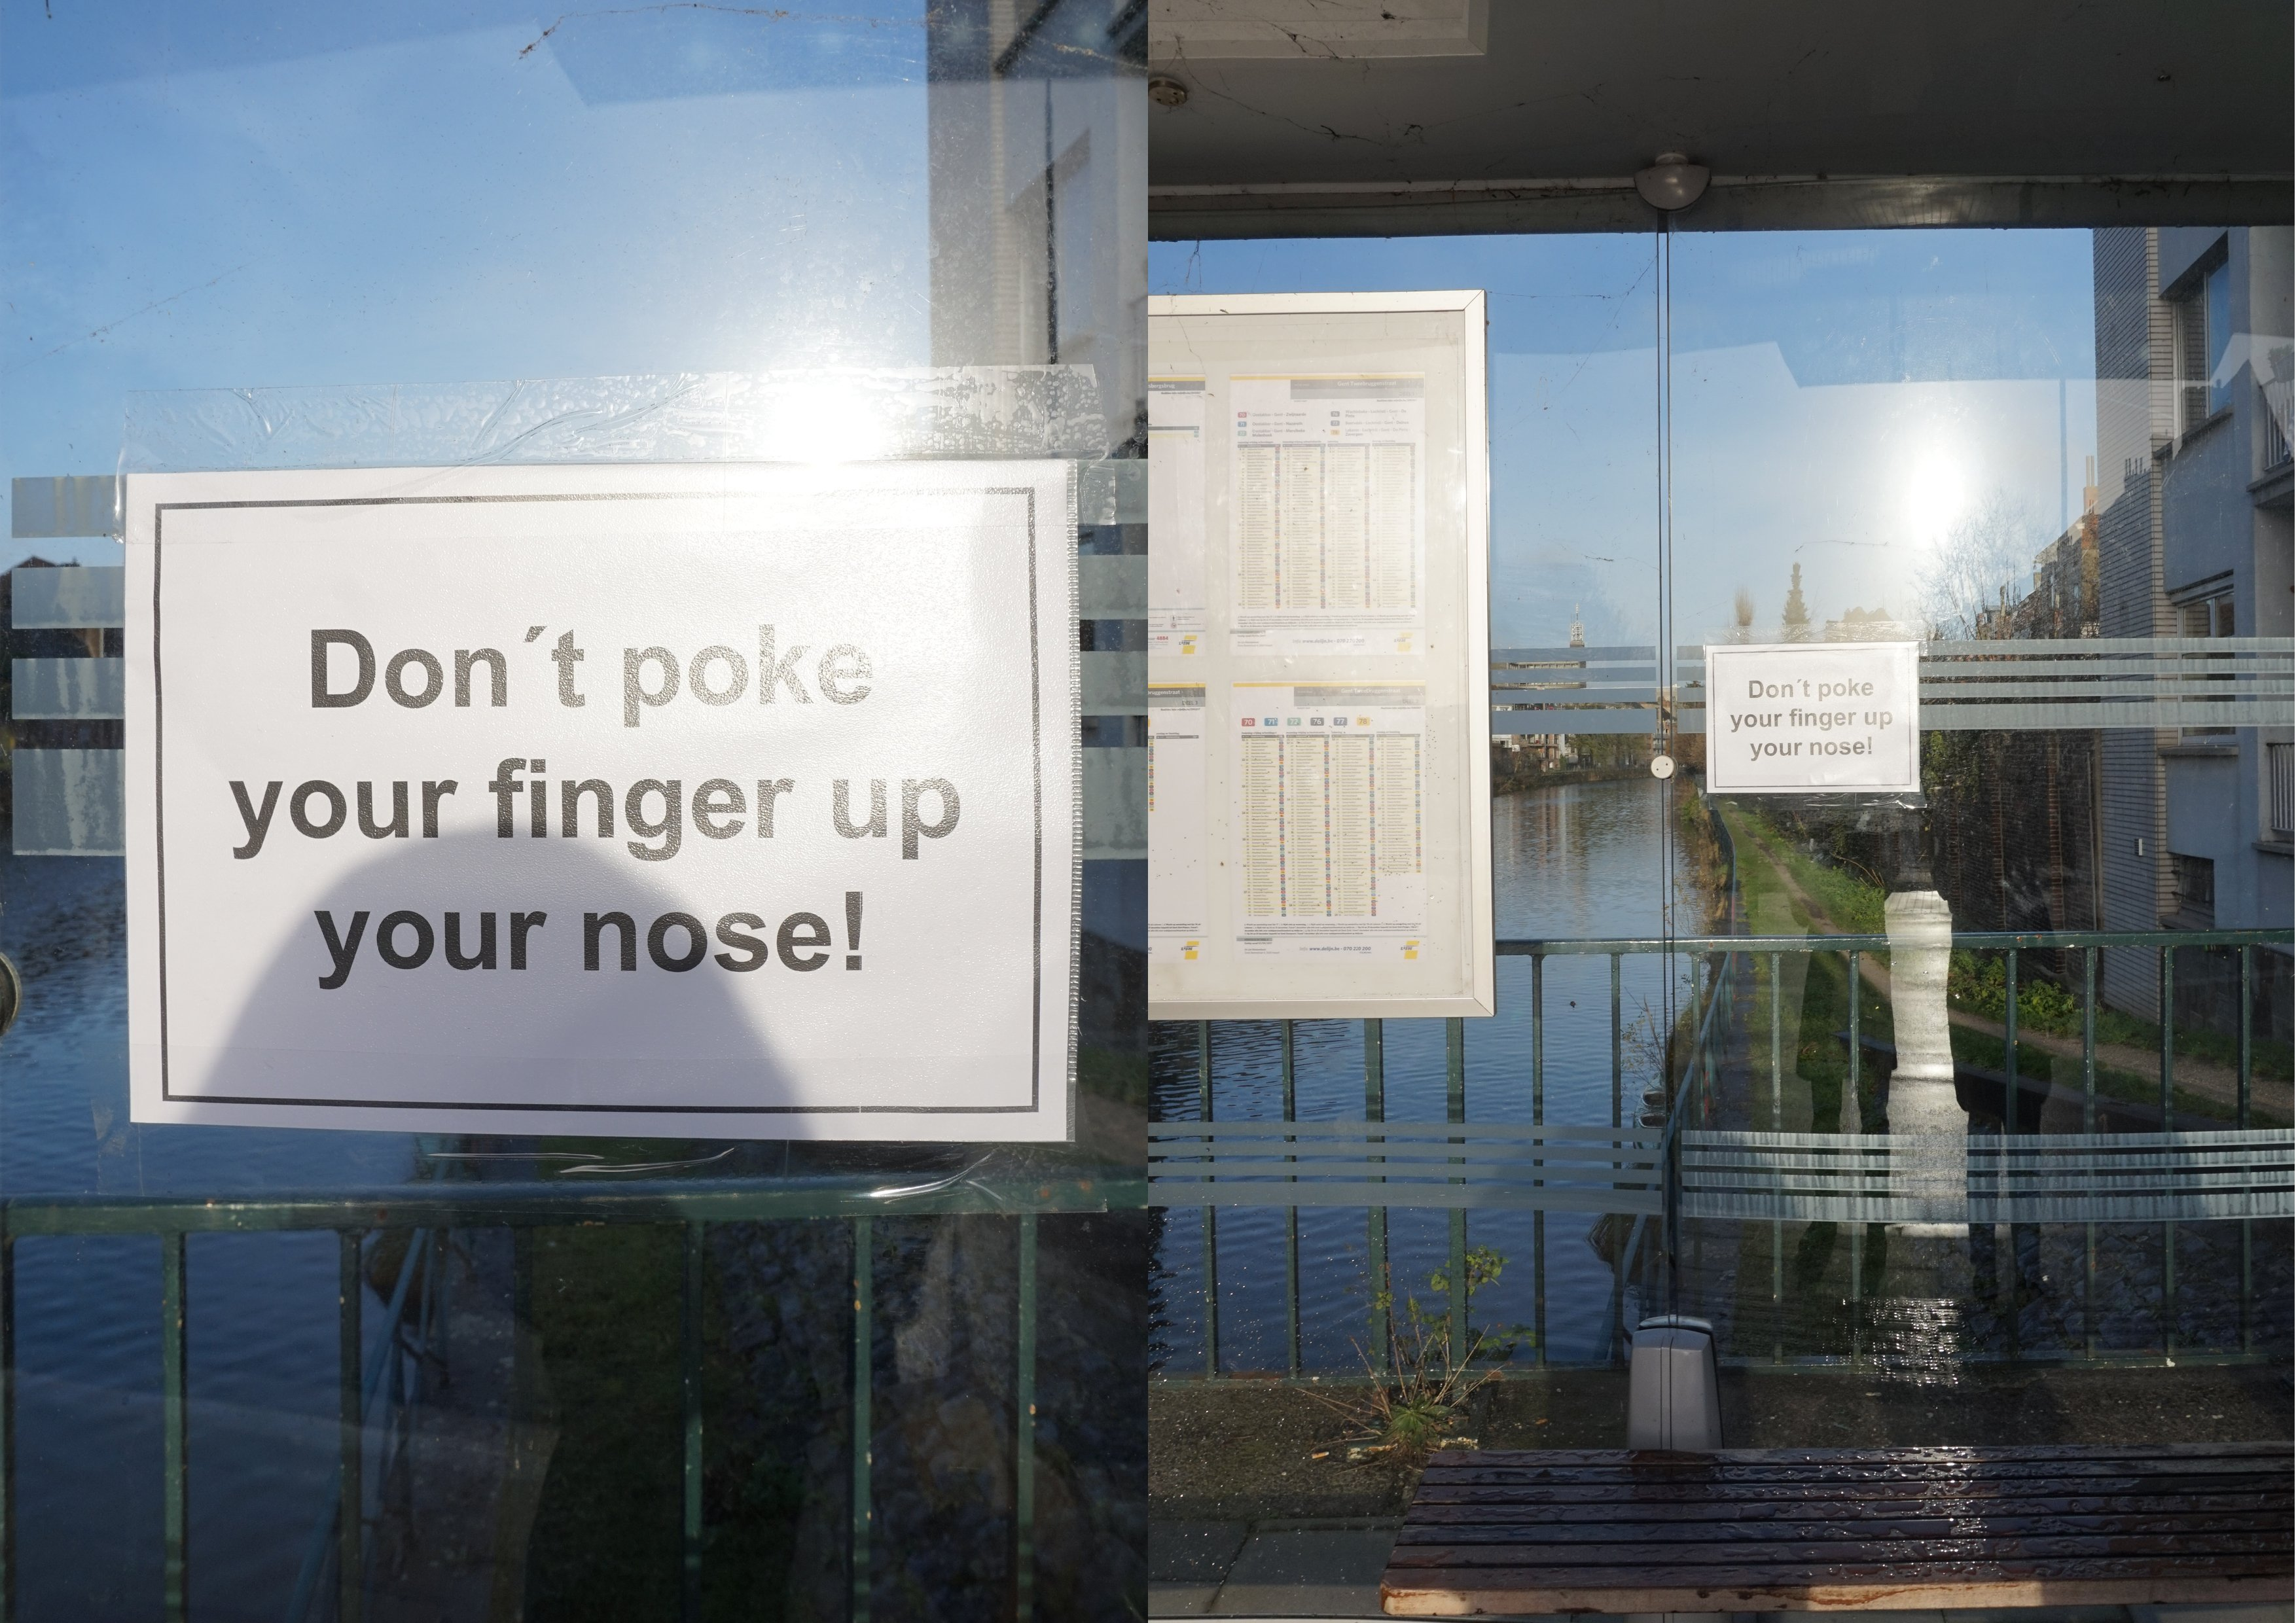 Don't poke your finger up your nose!